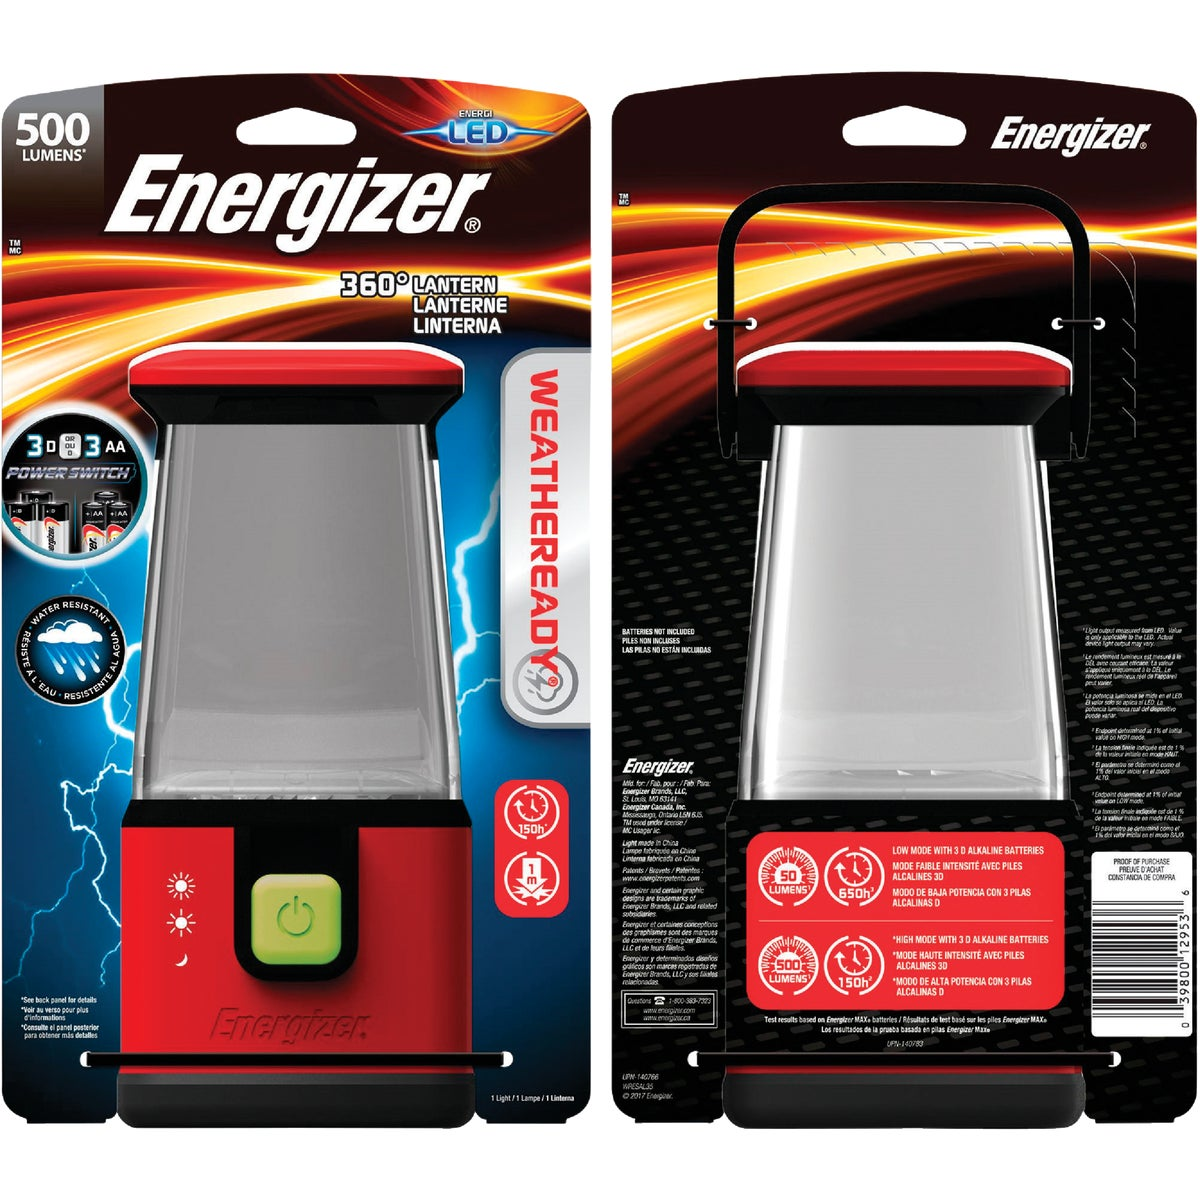 500HR LED AREA LIGHT - WRLMF35E by Energizer